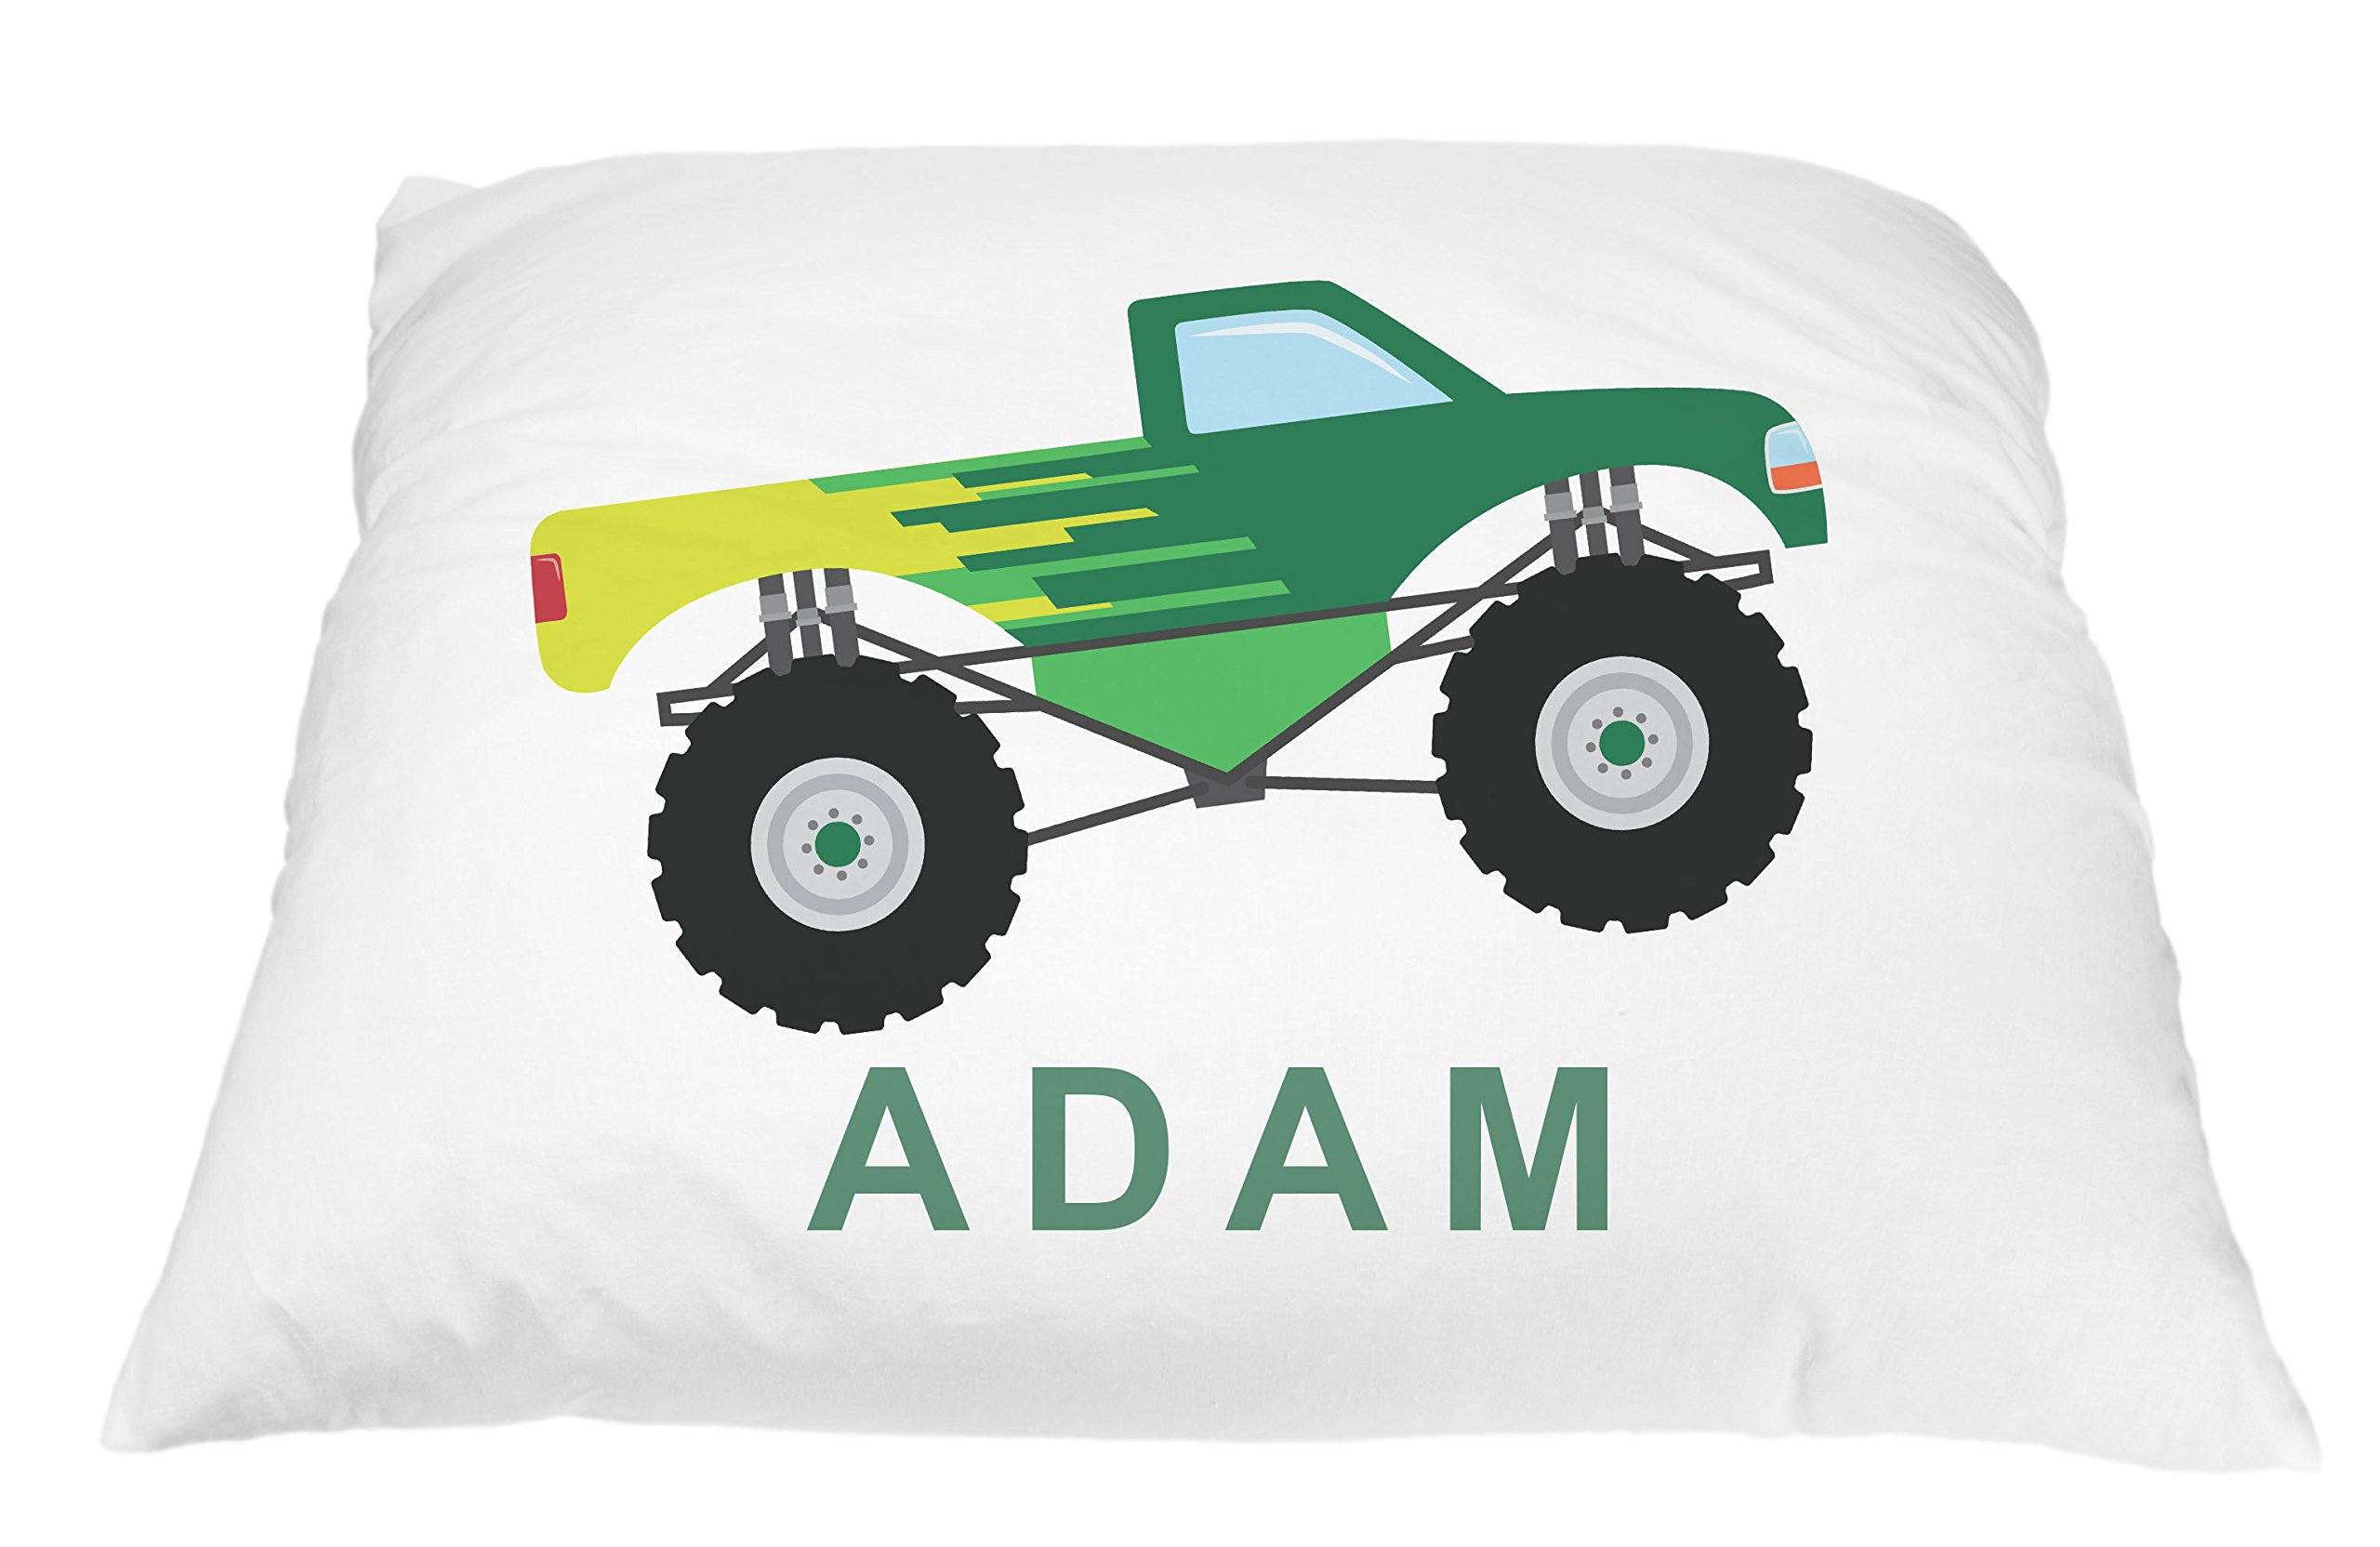 Monster Truck Personalized Kids Pillowcase, Truck Pillow, Toddler Pillowcase, Truck Pillowcase, Best Toddler Pillow, Monster Truck Pillow Microfiber Pillowcase 20x30 Inches (Green)